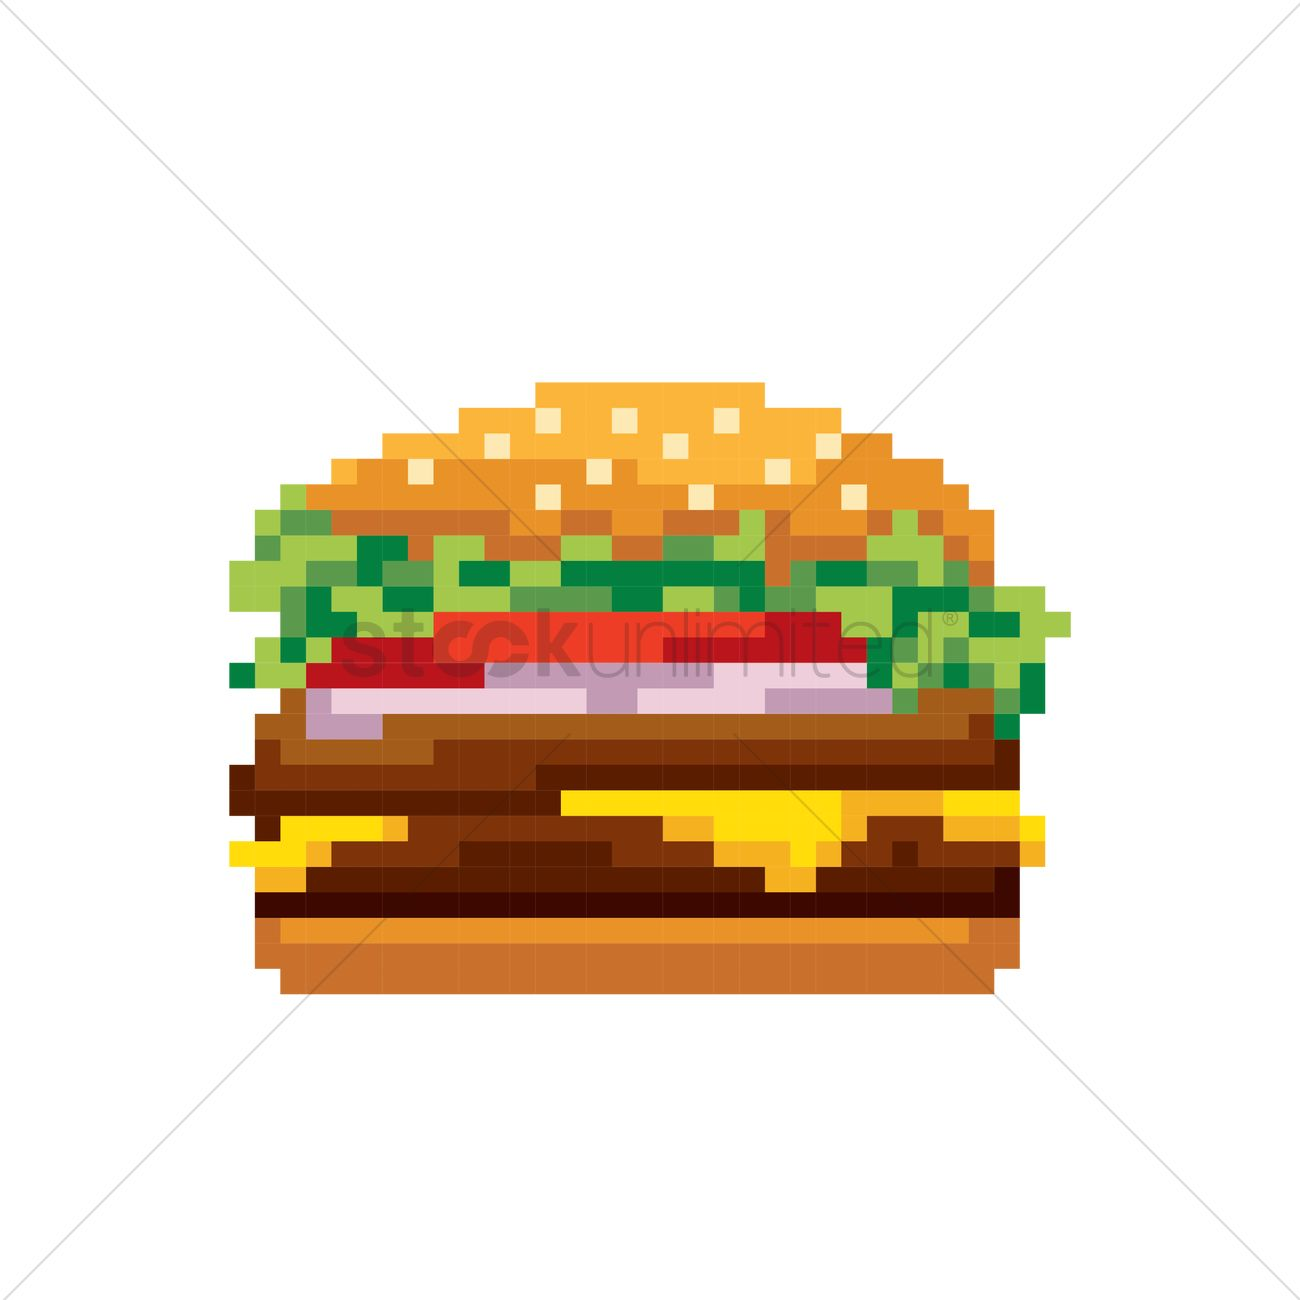 Pixel Art Burger Vector Image 1987367 Stockunlimited